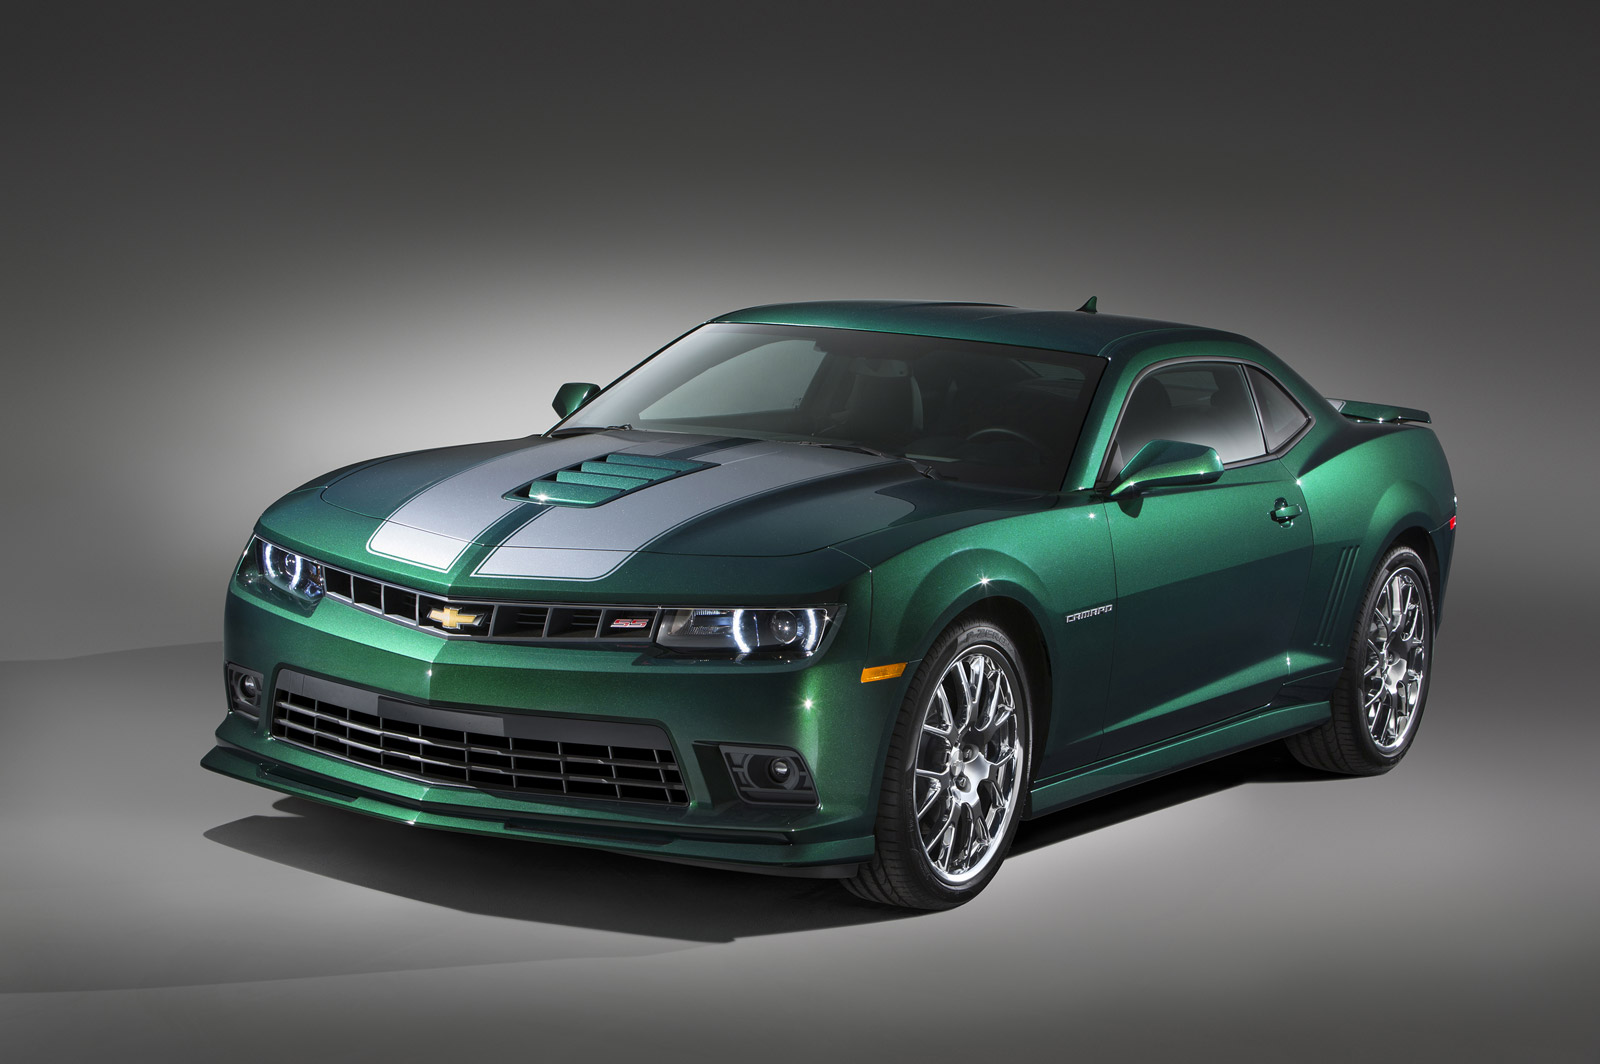 2015 Chevrolet Camaro Chevy Review Ratings Specs Prices And Photos The Car Connection